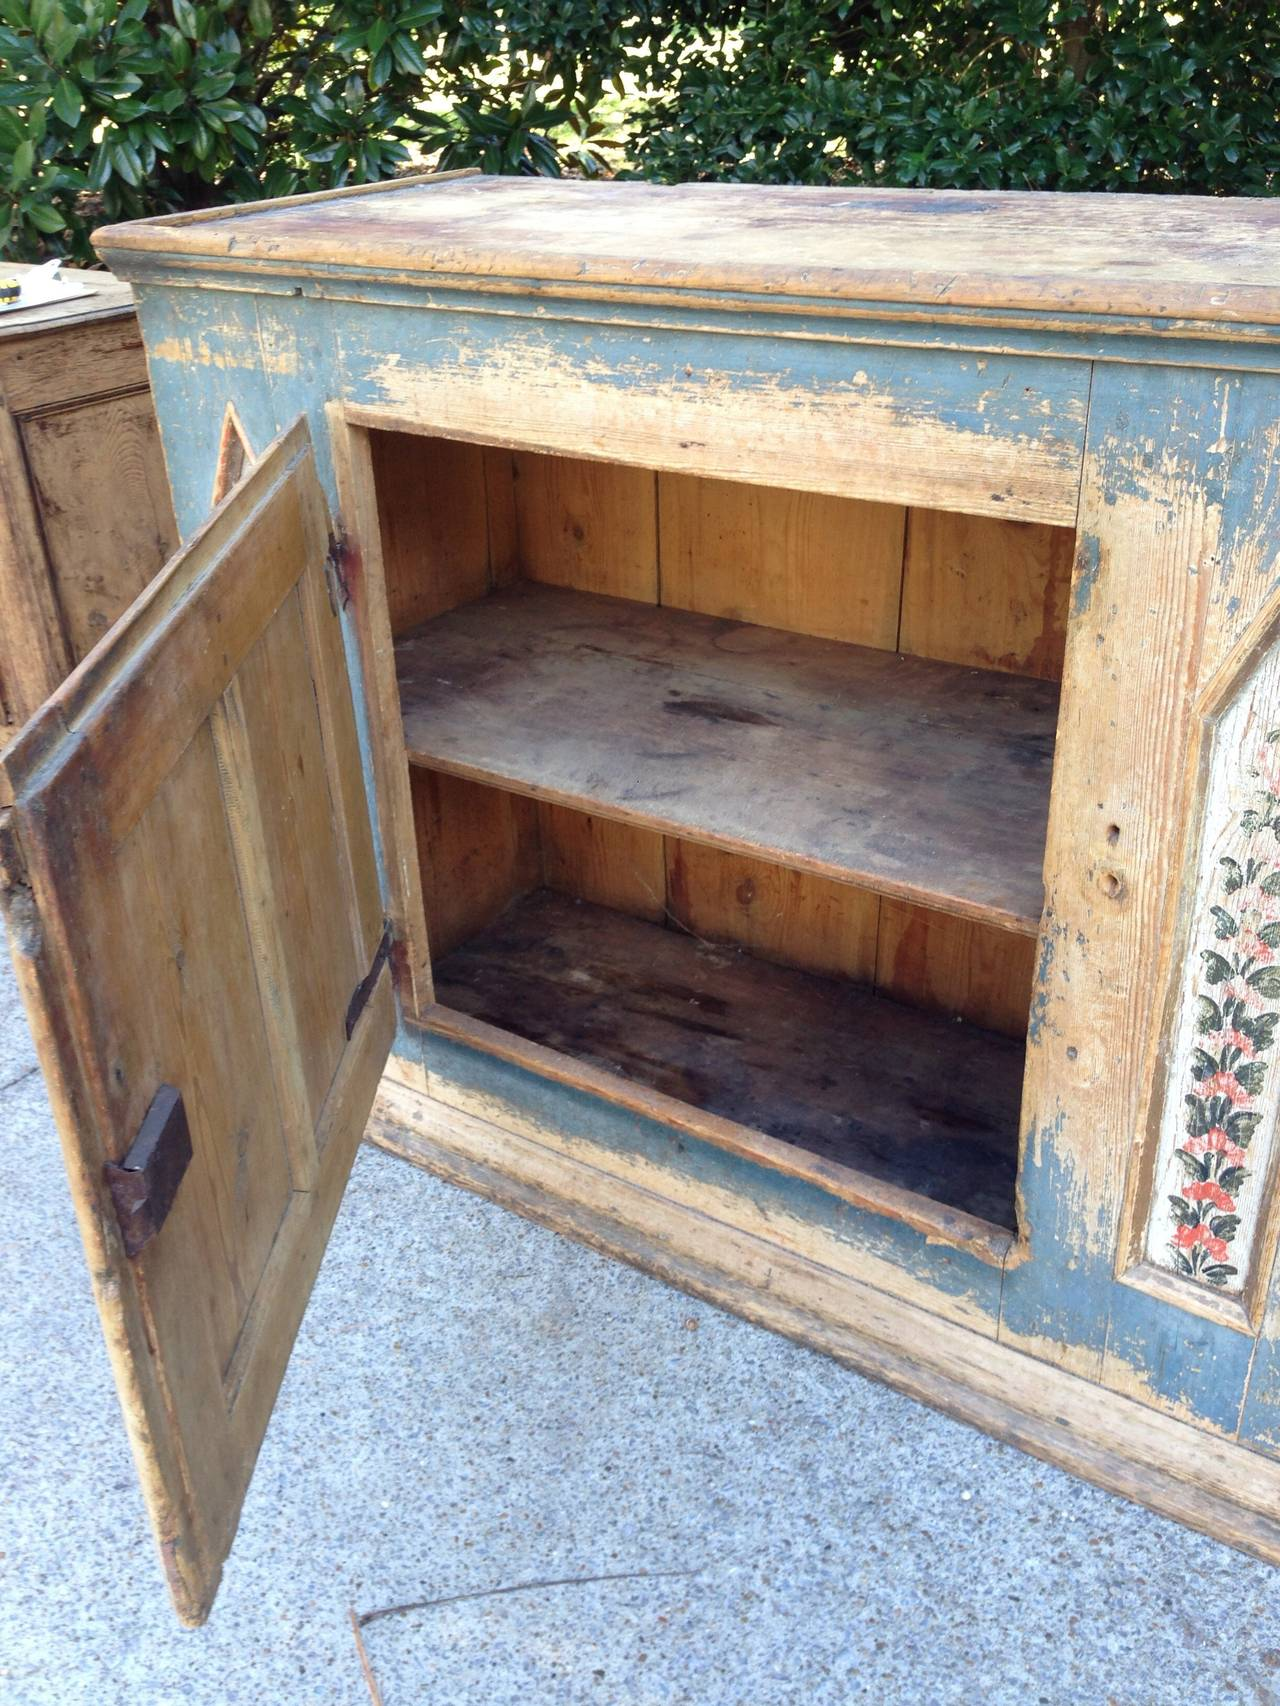 Lovely antique painted Swedish cupboard with original paint. One center door and one shelf inside.